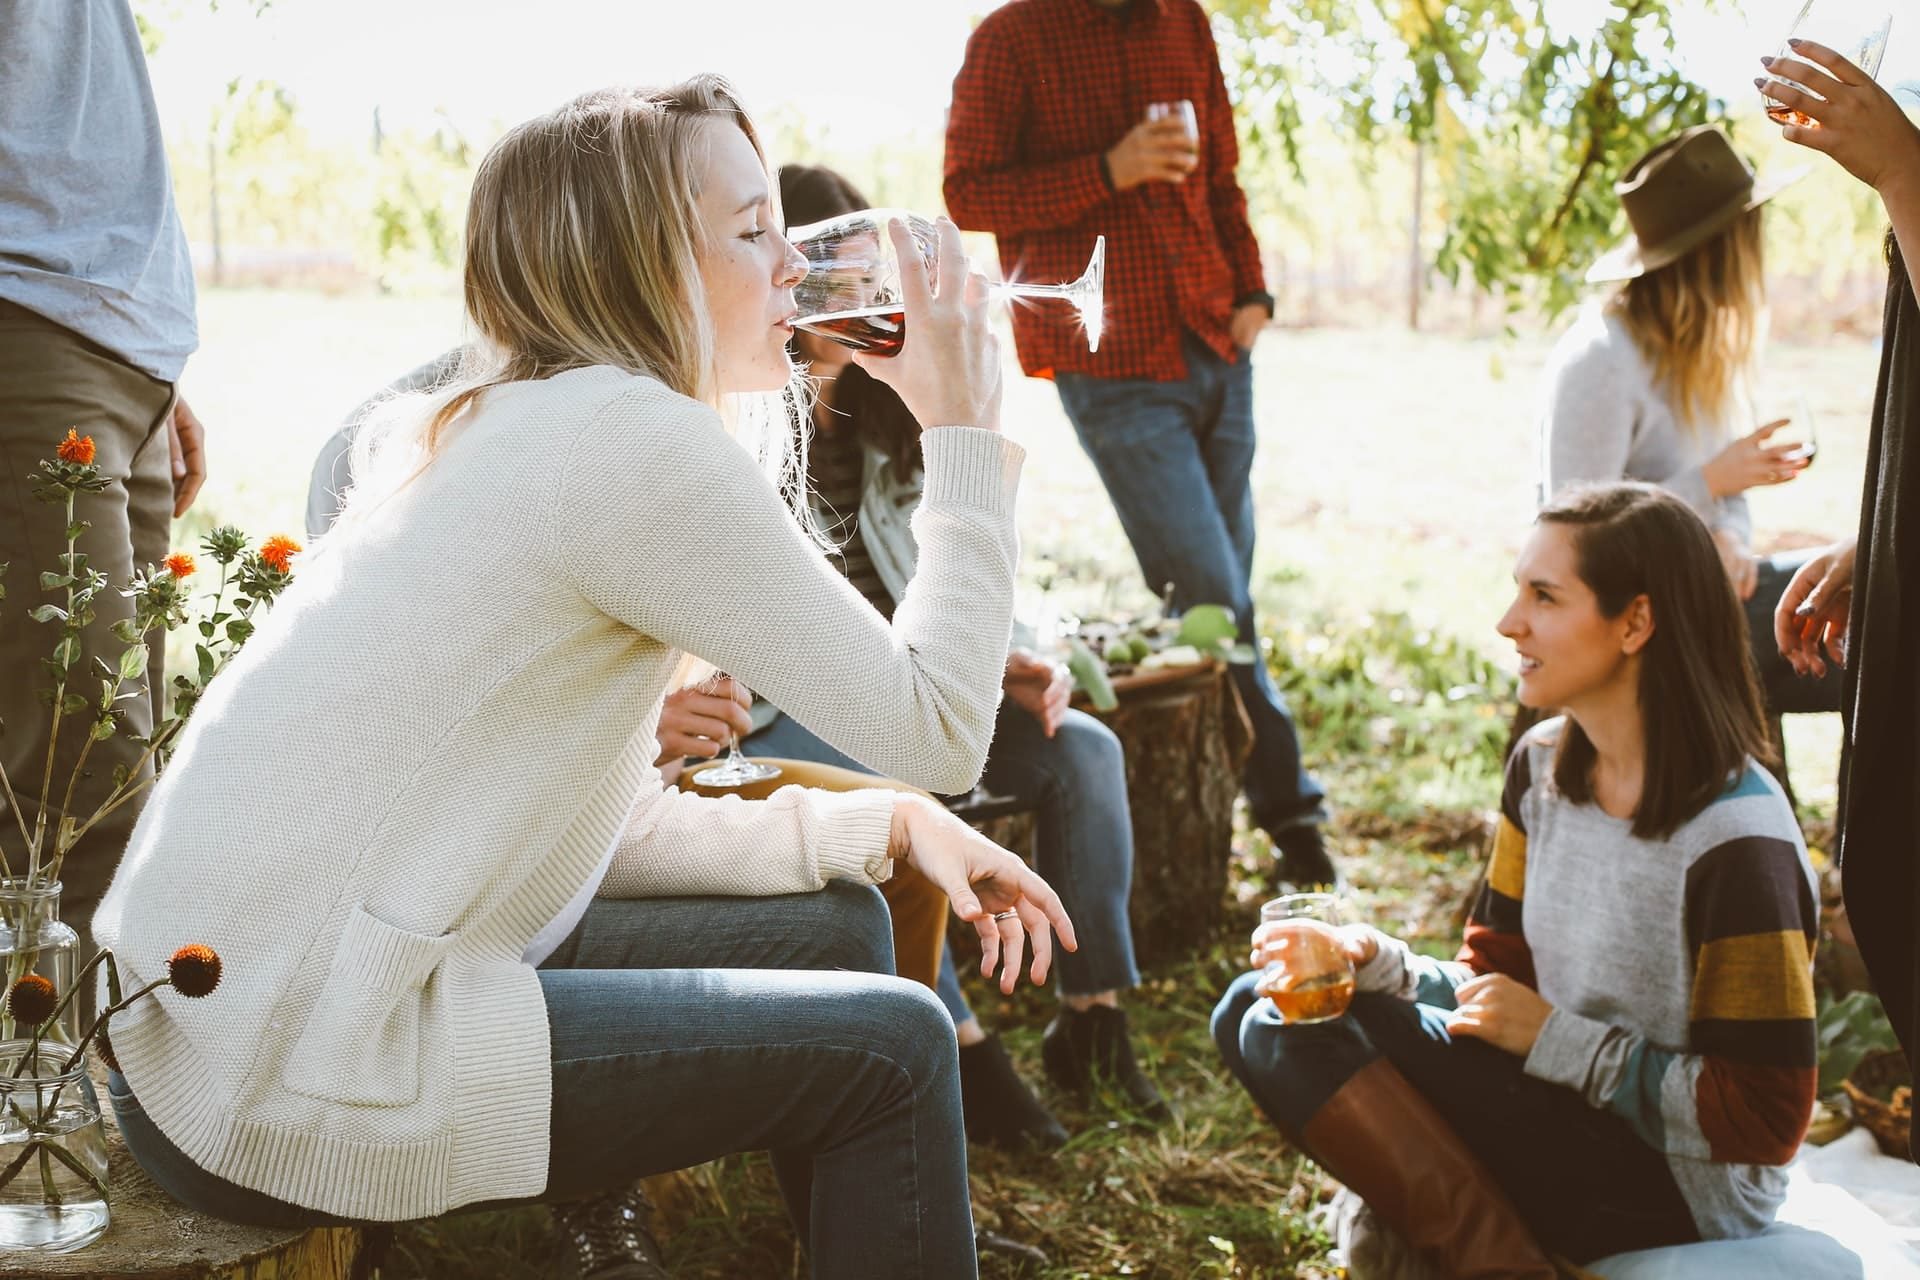 young people drinking alcohol outdoors